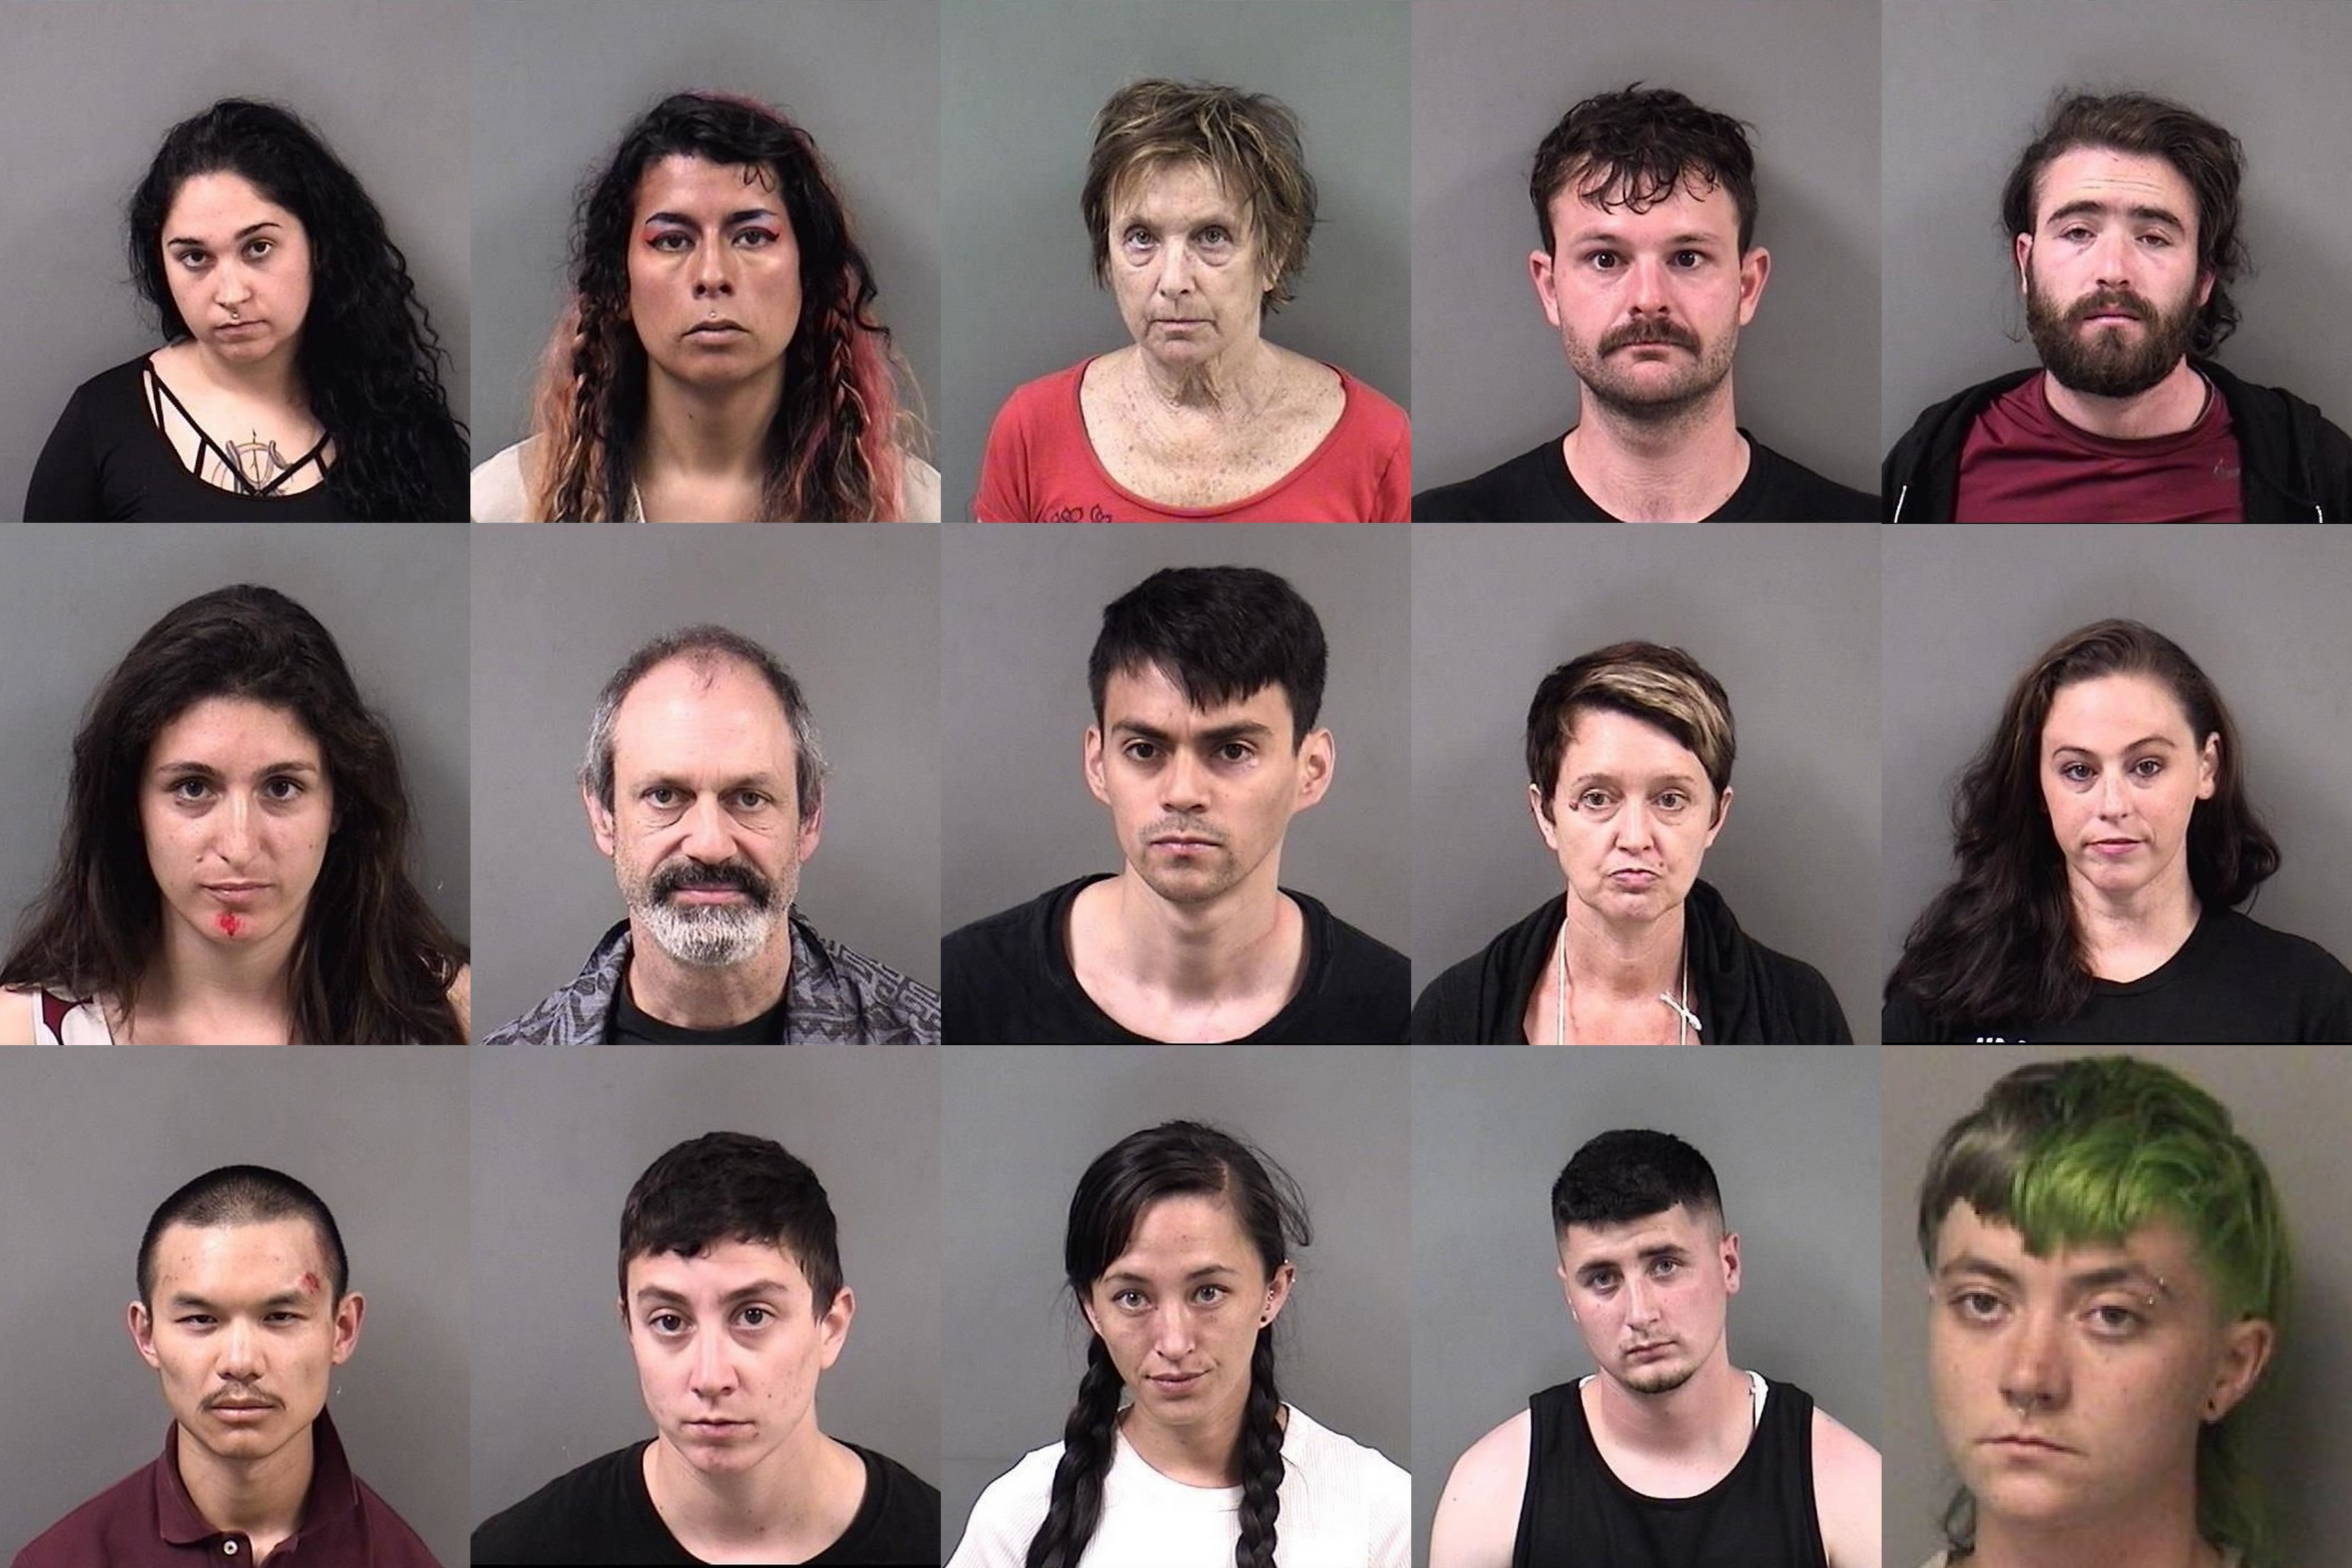 20 Antifa members arrested during protest in Berkeley